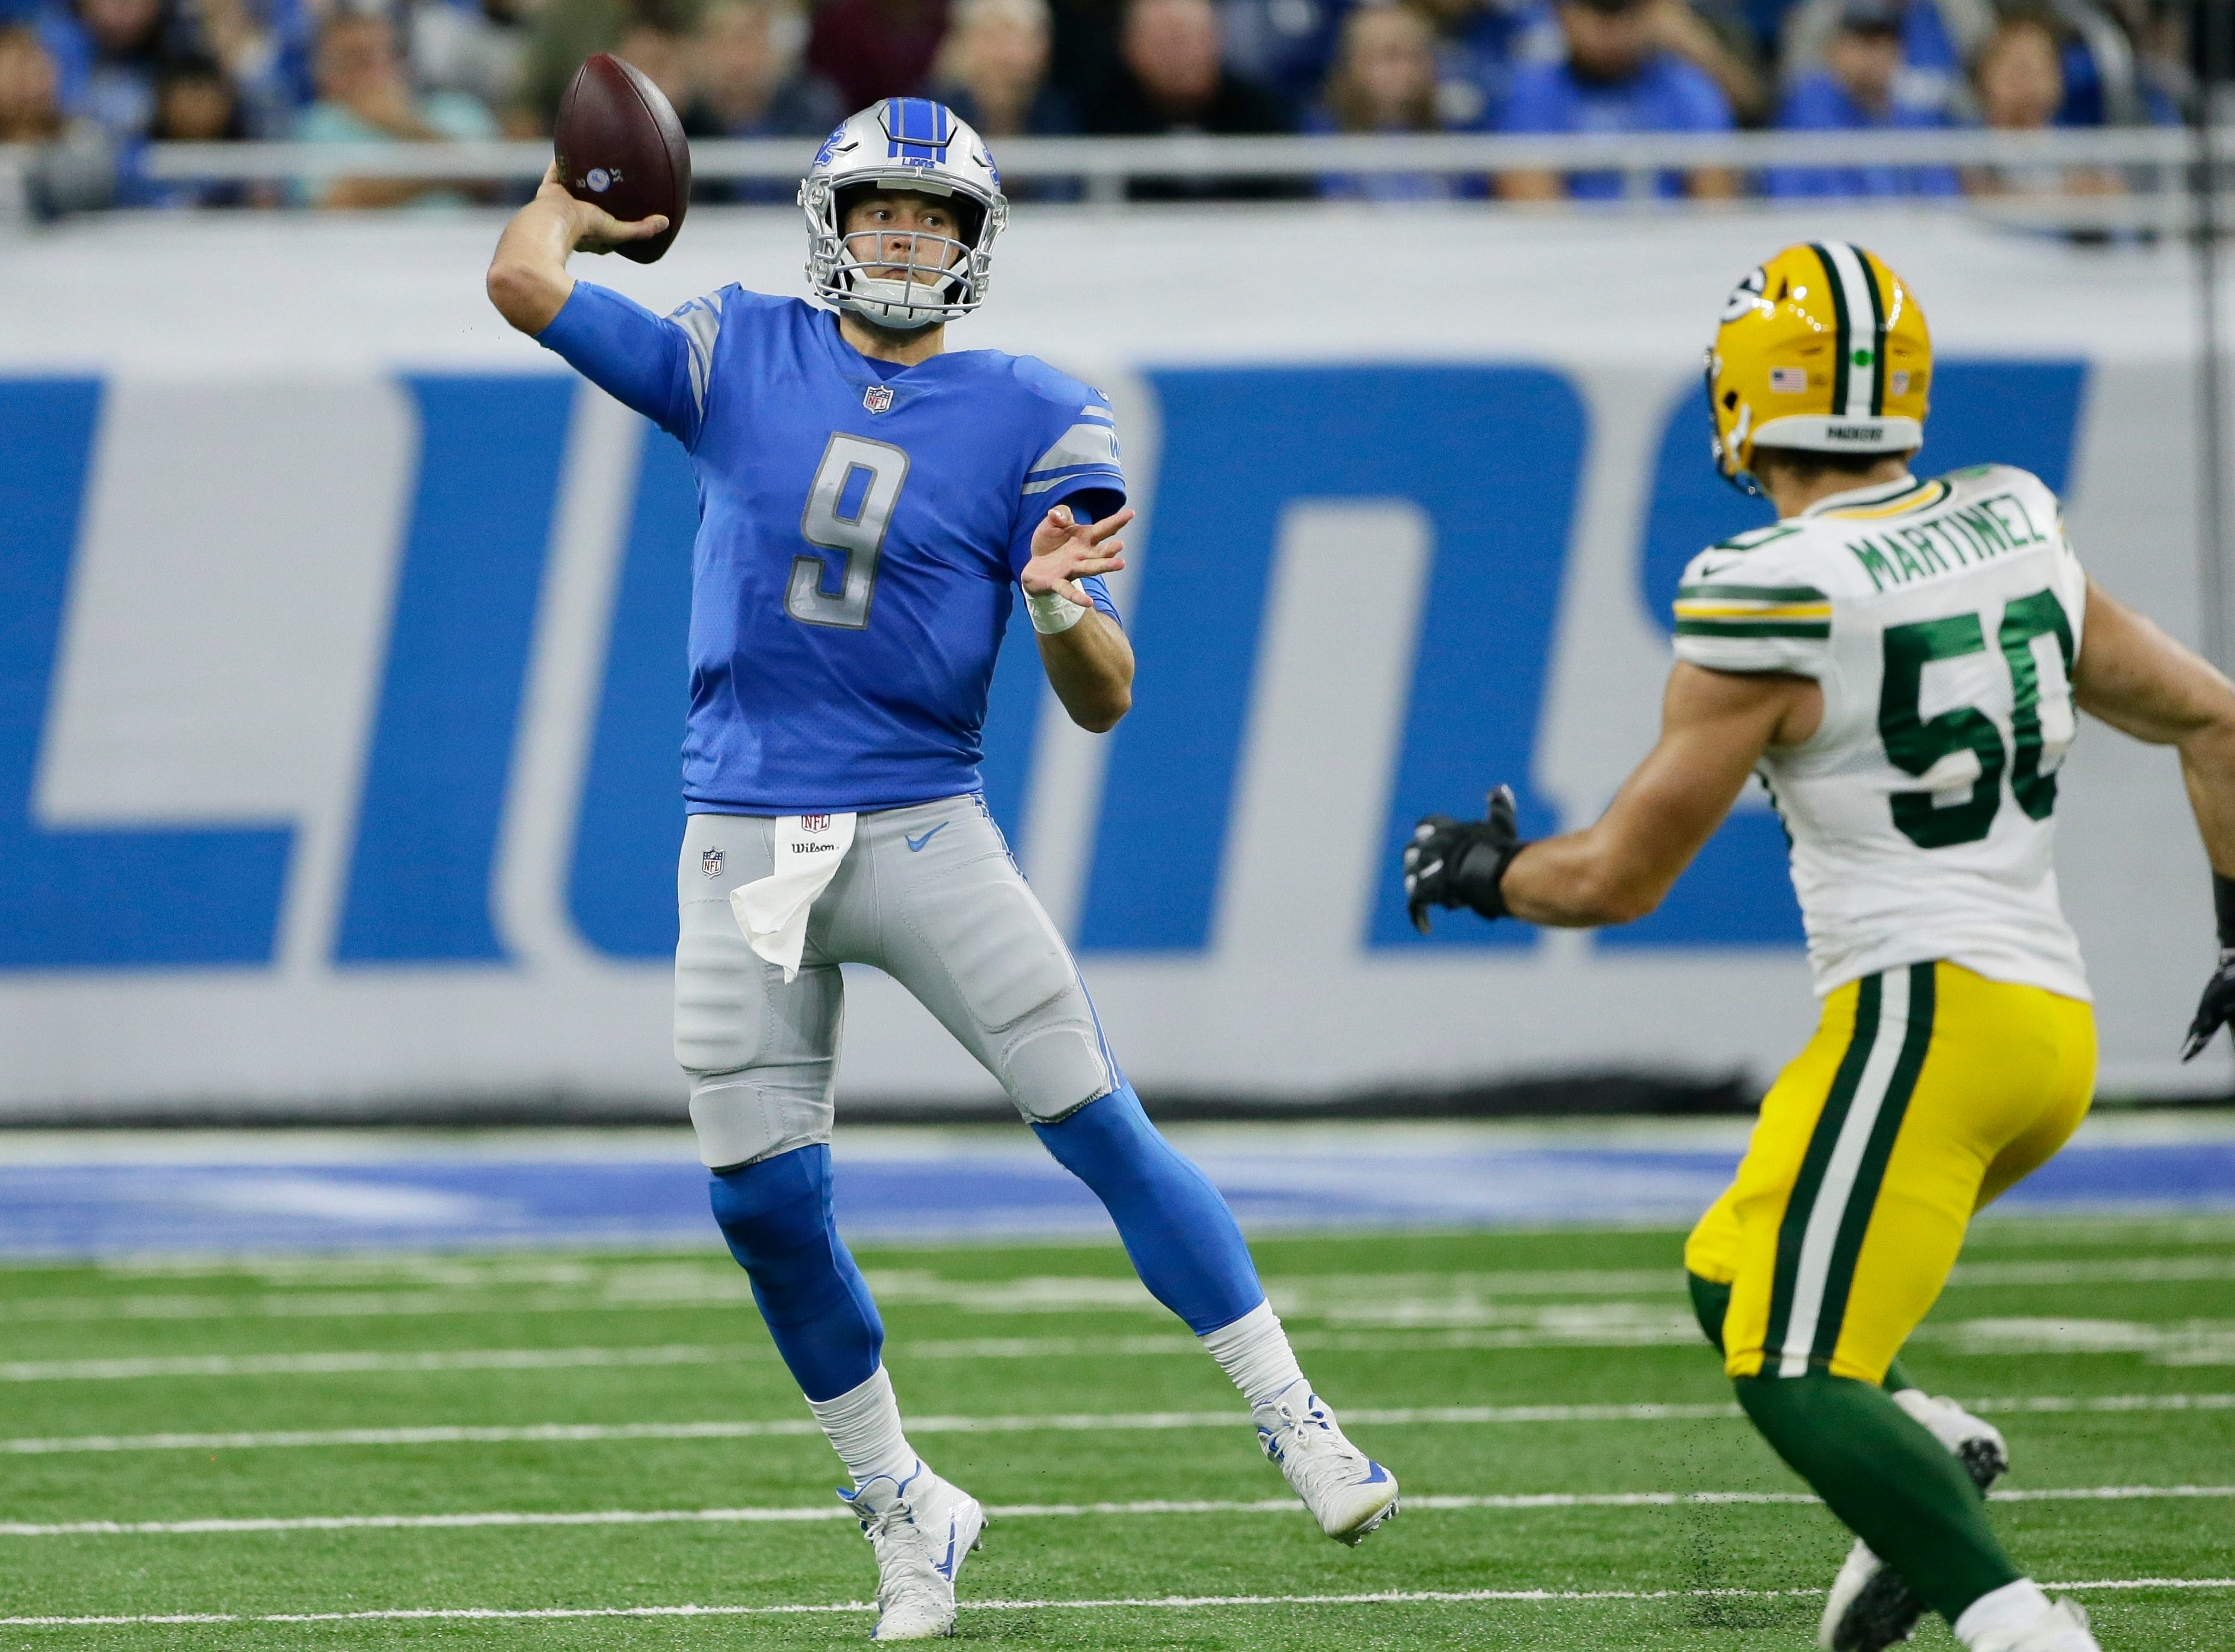 Detroit Lions quarterback Matthew Stafford (9) throws as Green Bay Packers linebacker Blake Martinez (50) rushes during the second half of an NFL football game, Sunday, Oct. 7, 2018, in Detroit.